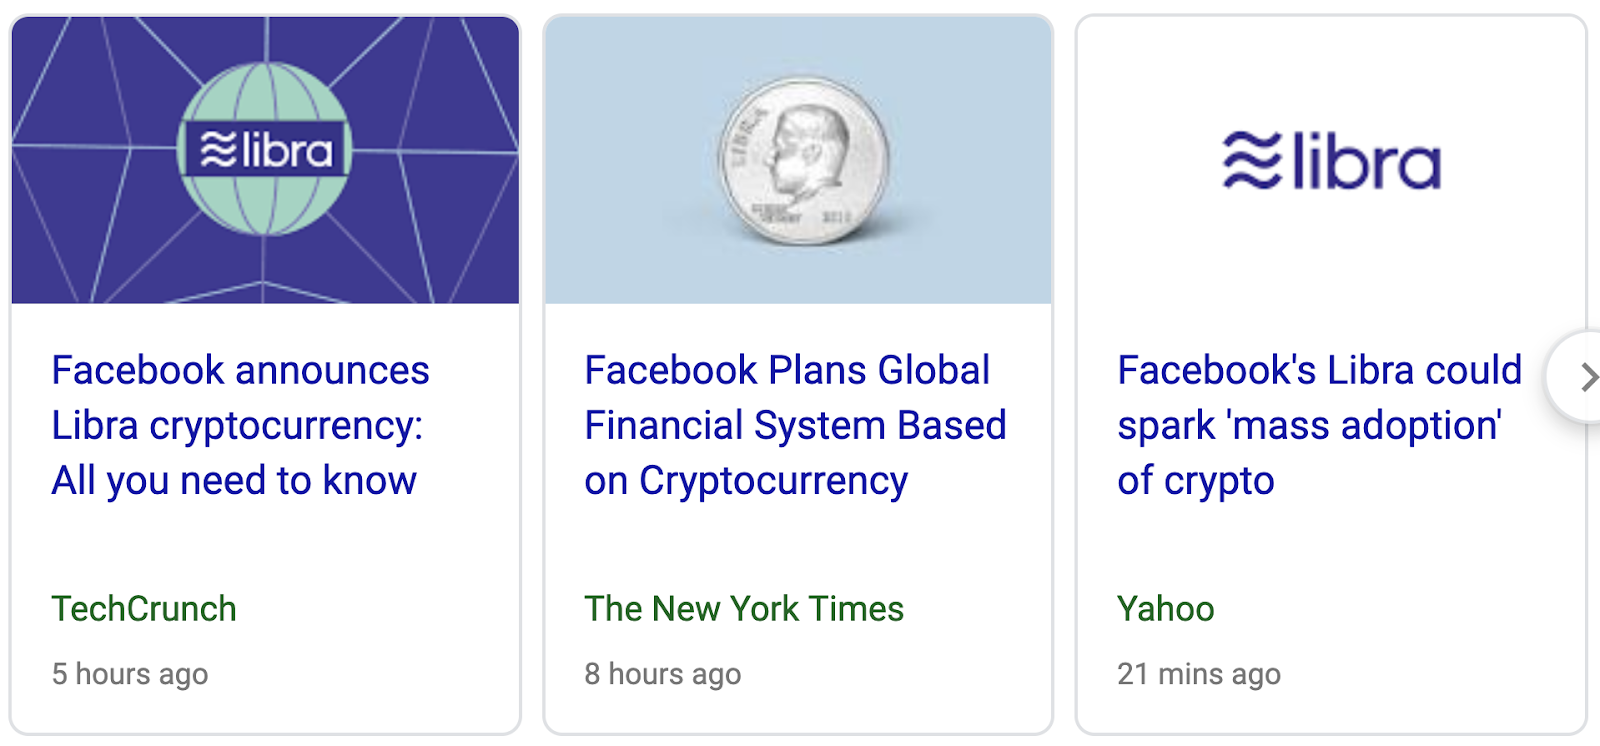 free to find truth: 13 18 47 63 97 143 169 | Facebook announces